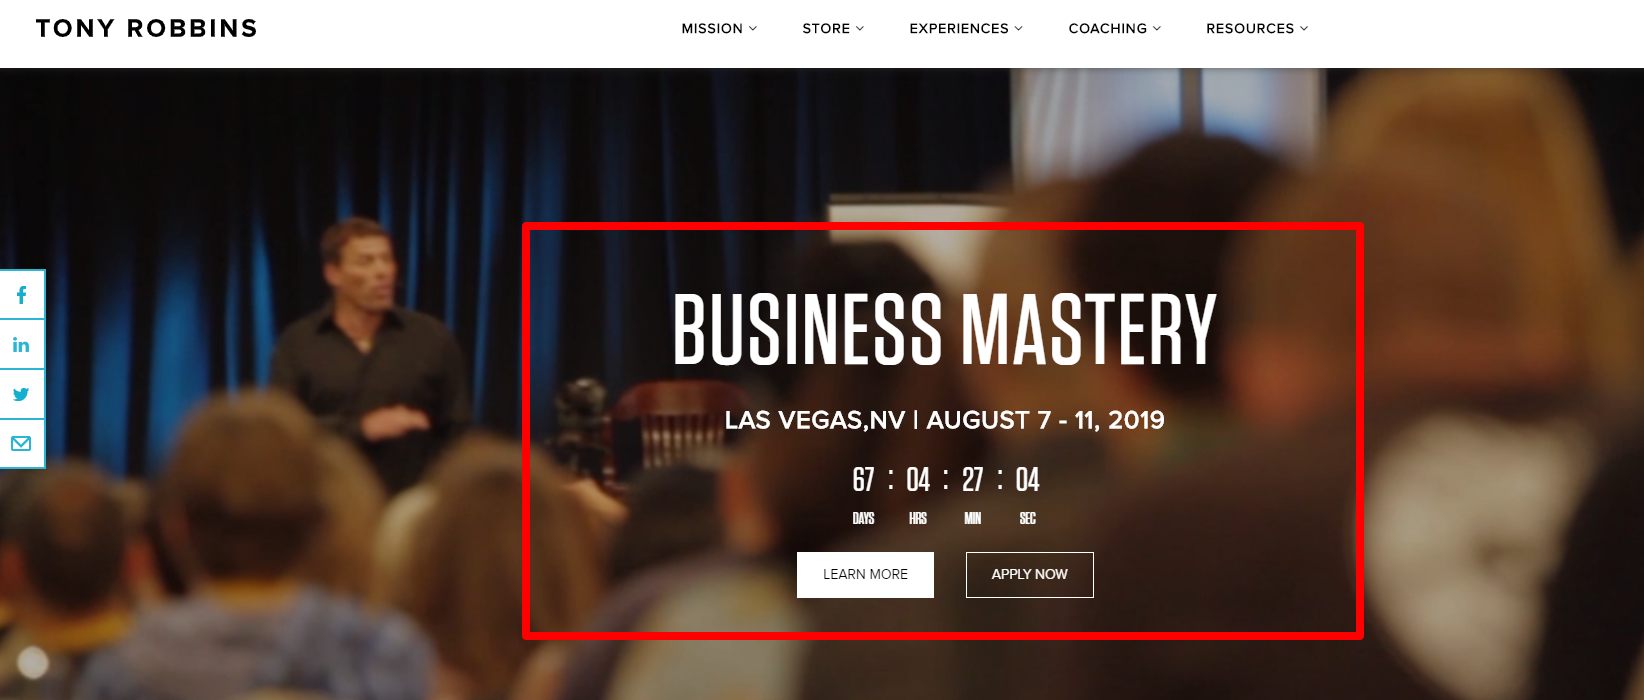 Business Mastery Event- Las Vegas 2019